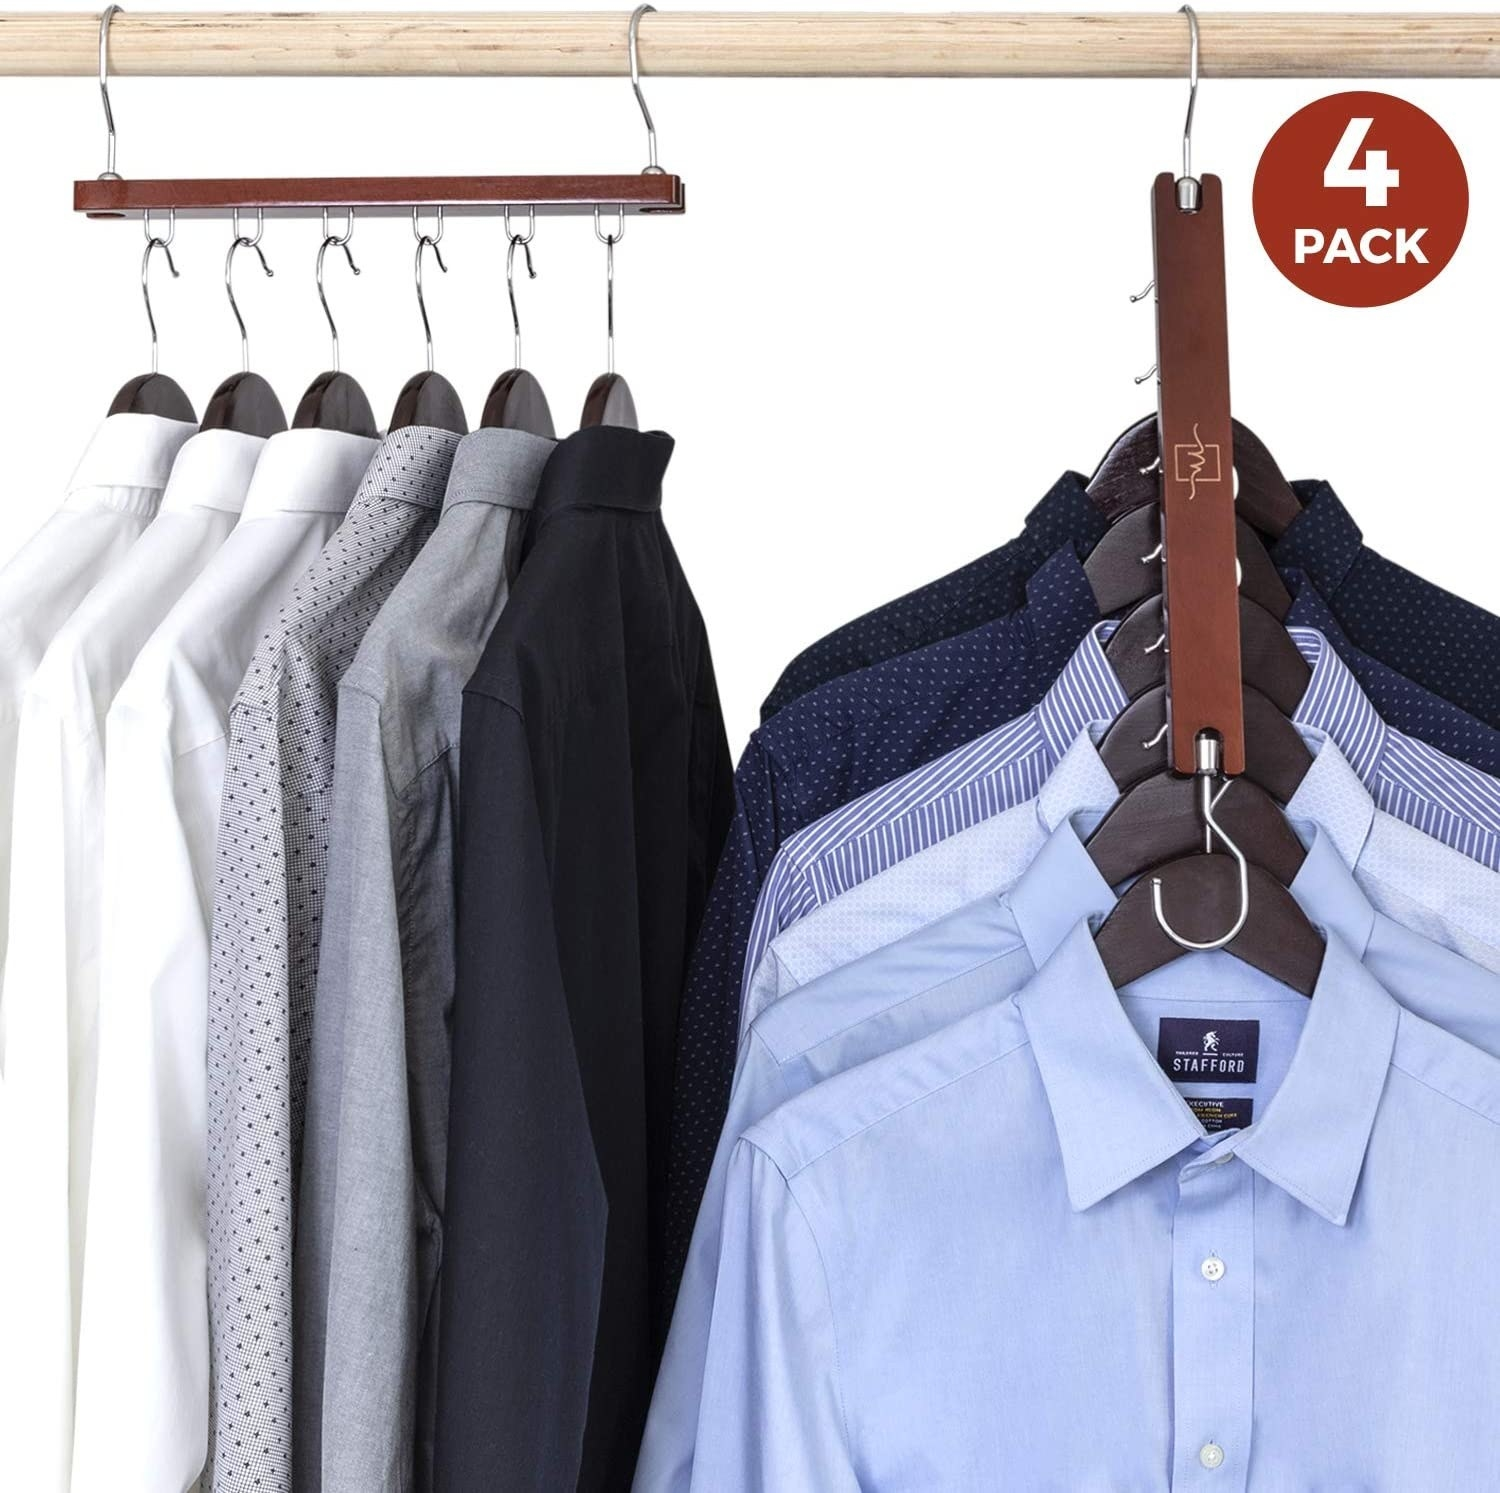 Dress shirts on the hanger folded down in a closet